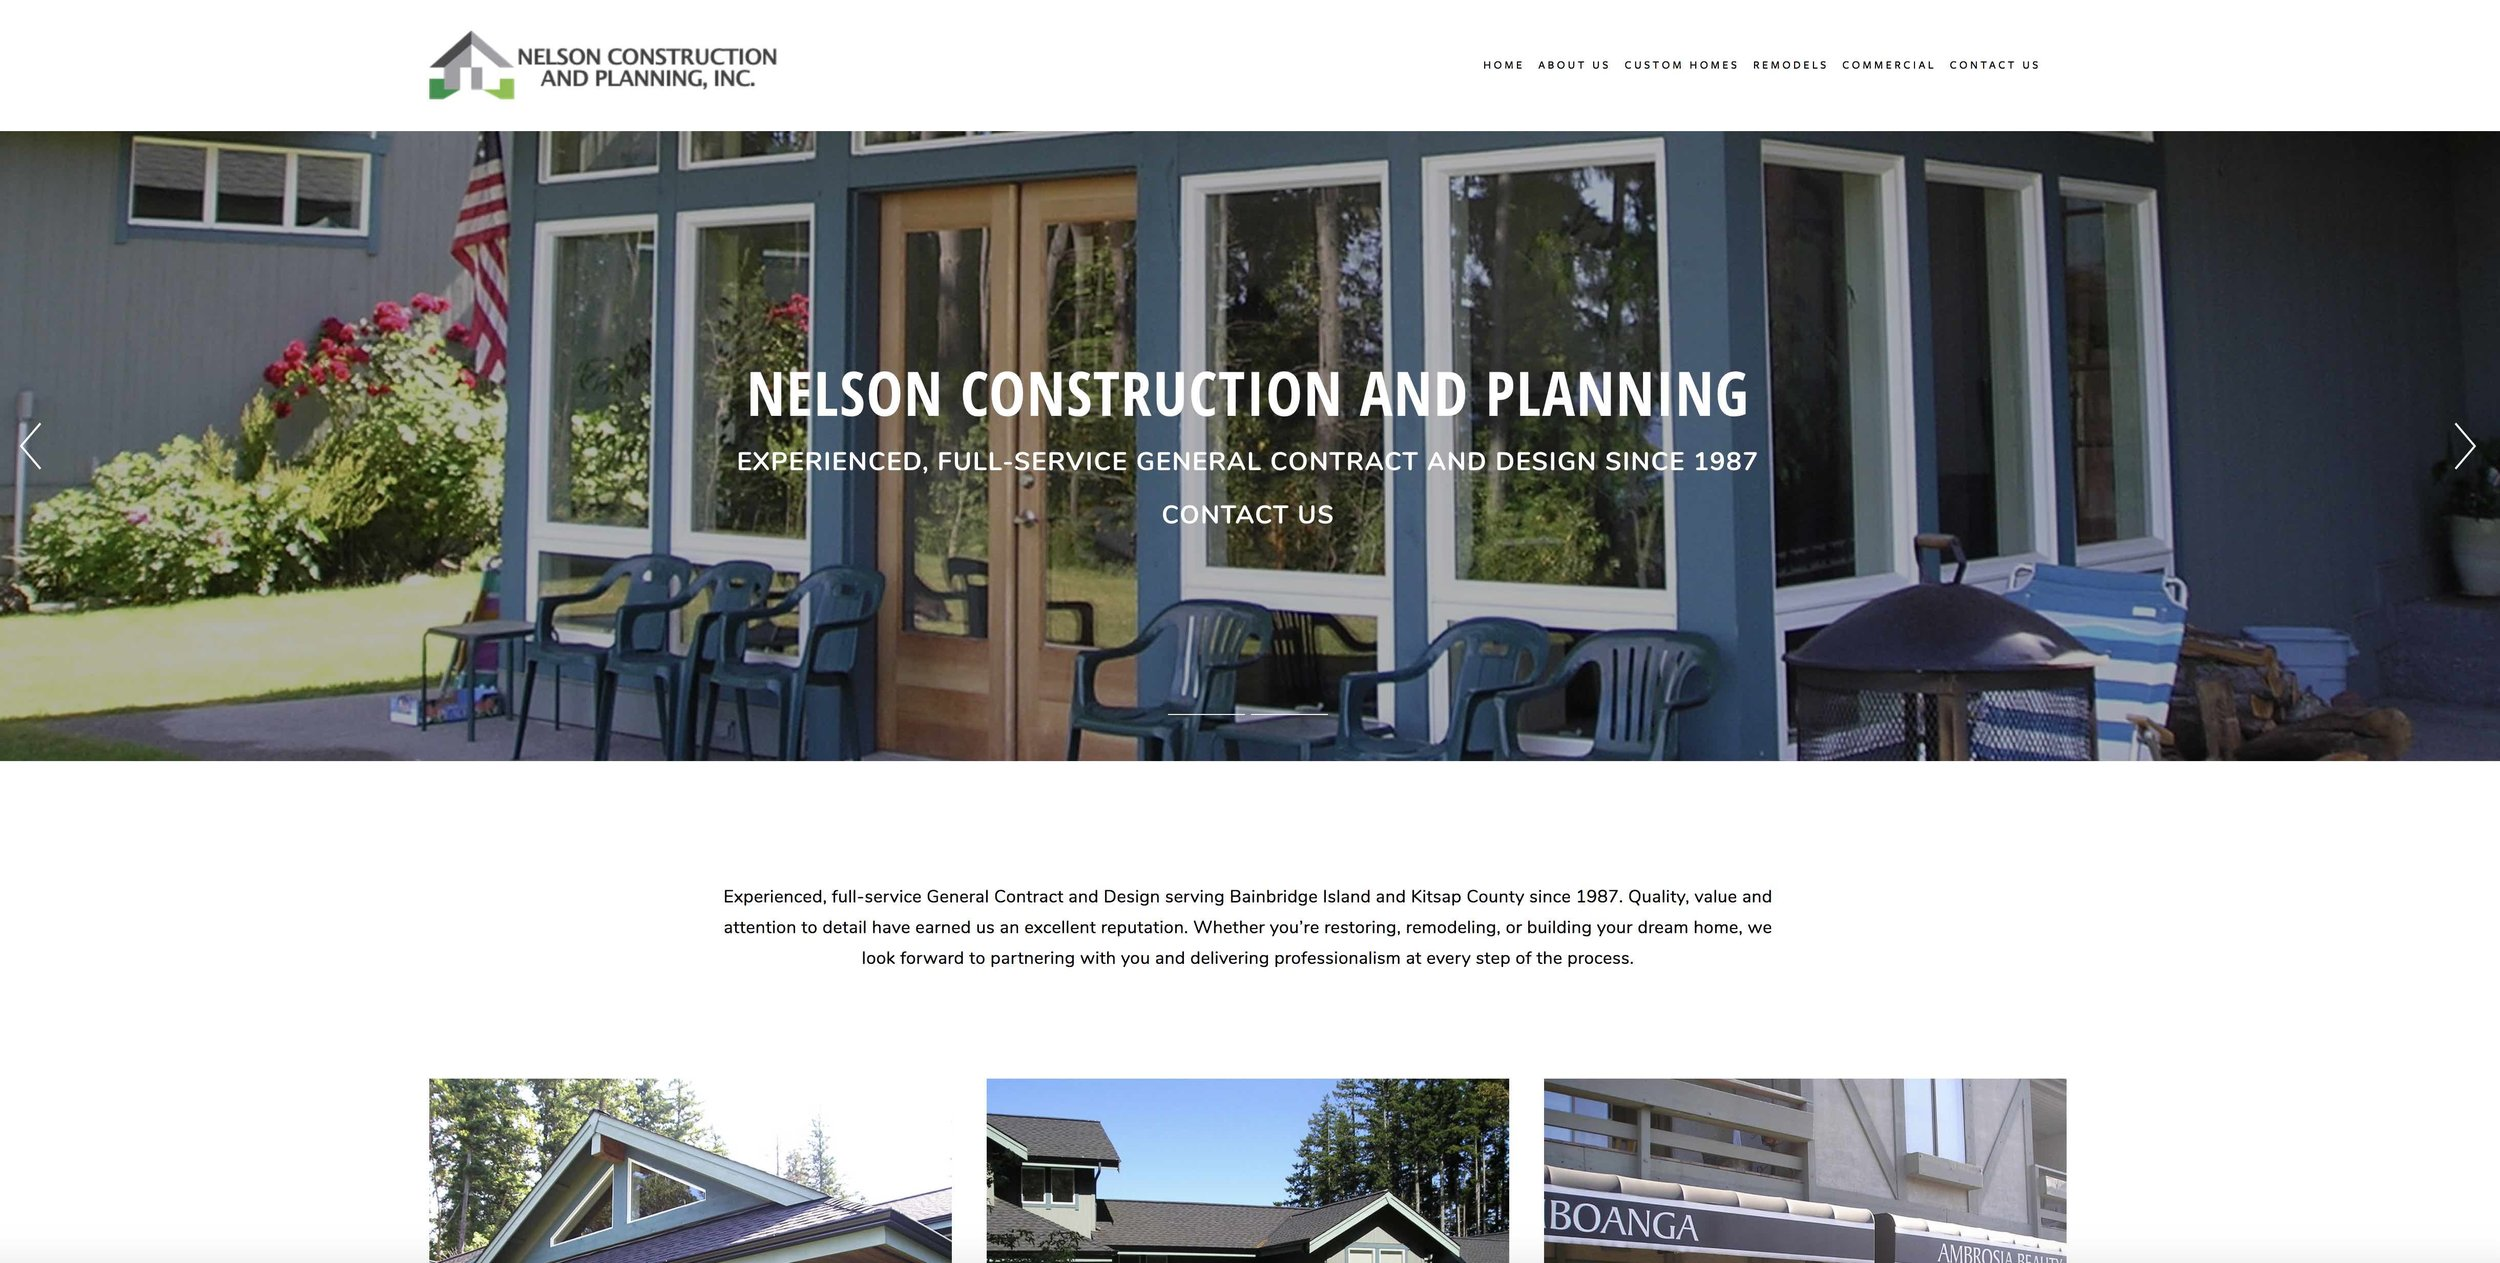 Nelson Construction and Planning